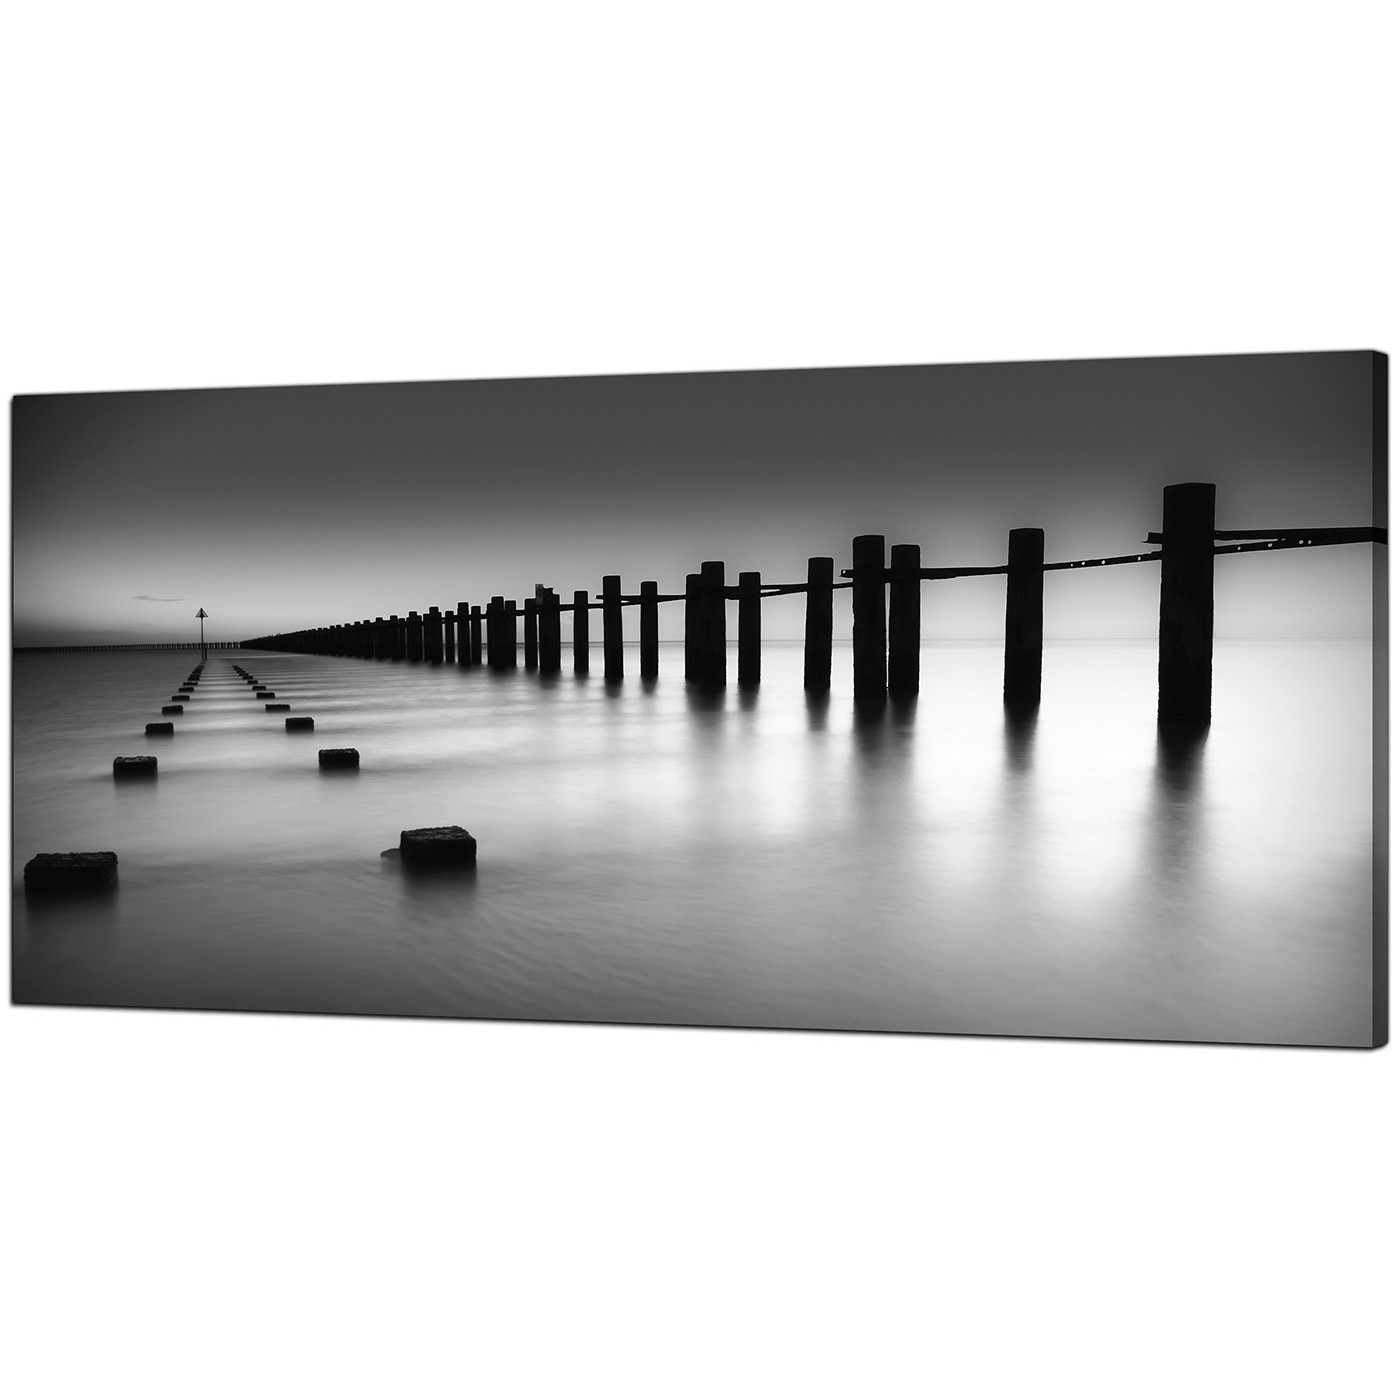 Modern Black And White Canvas Art Of The Sea Intended For Widely Used Black And White Photography Canvas Wall Art (View 12 of 15)